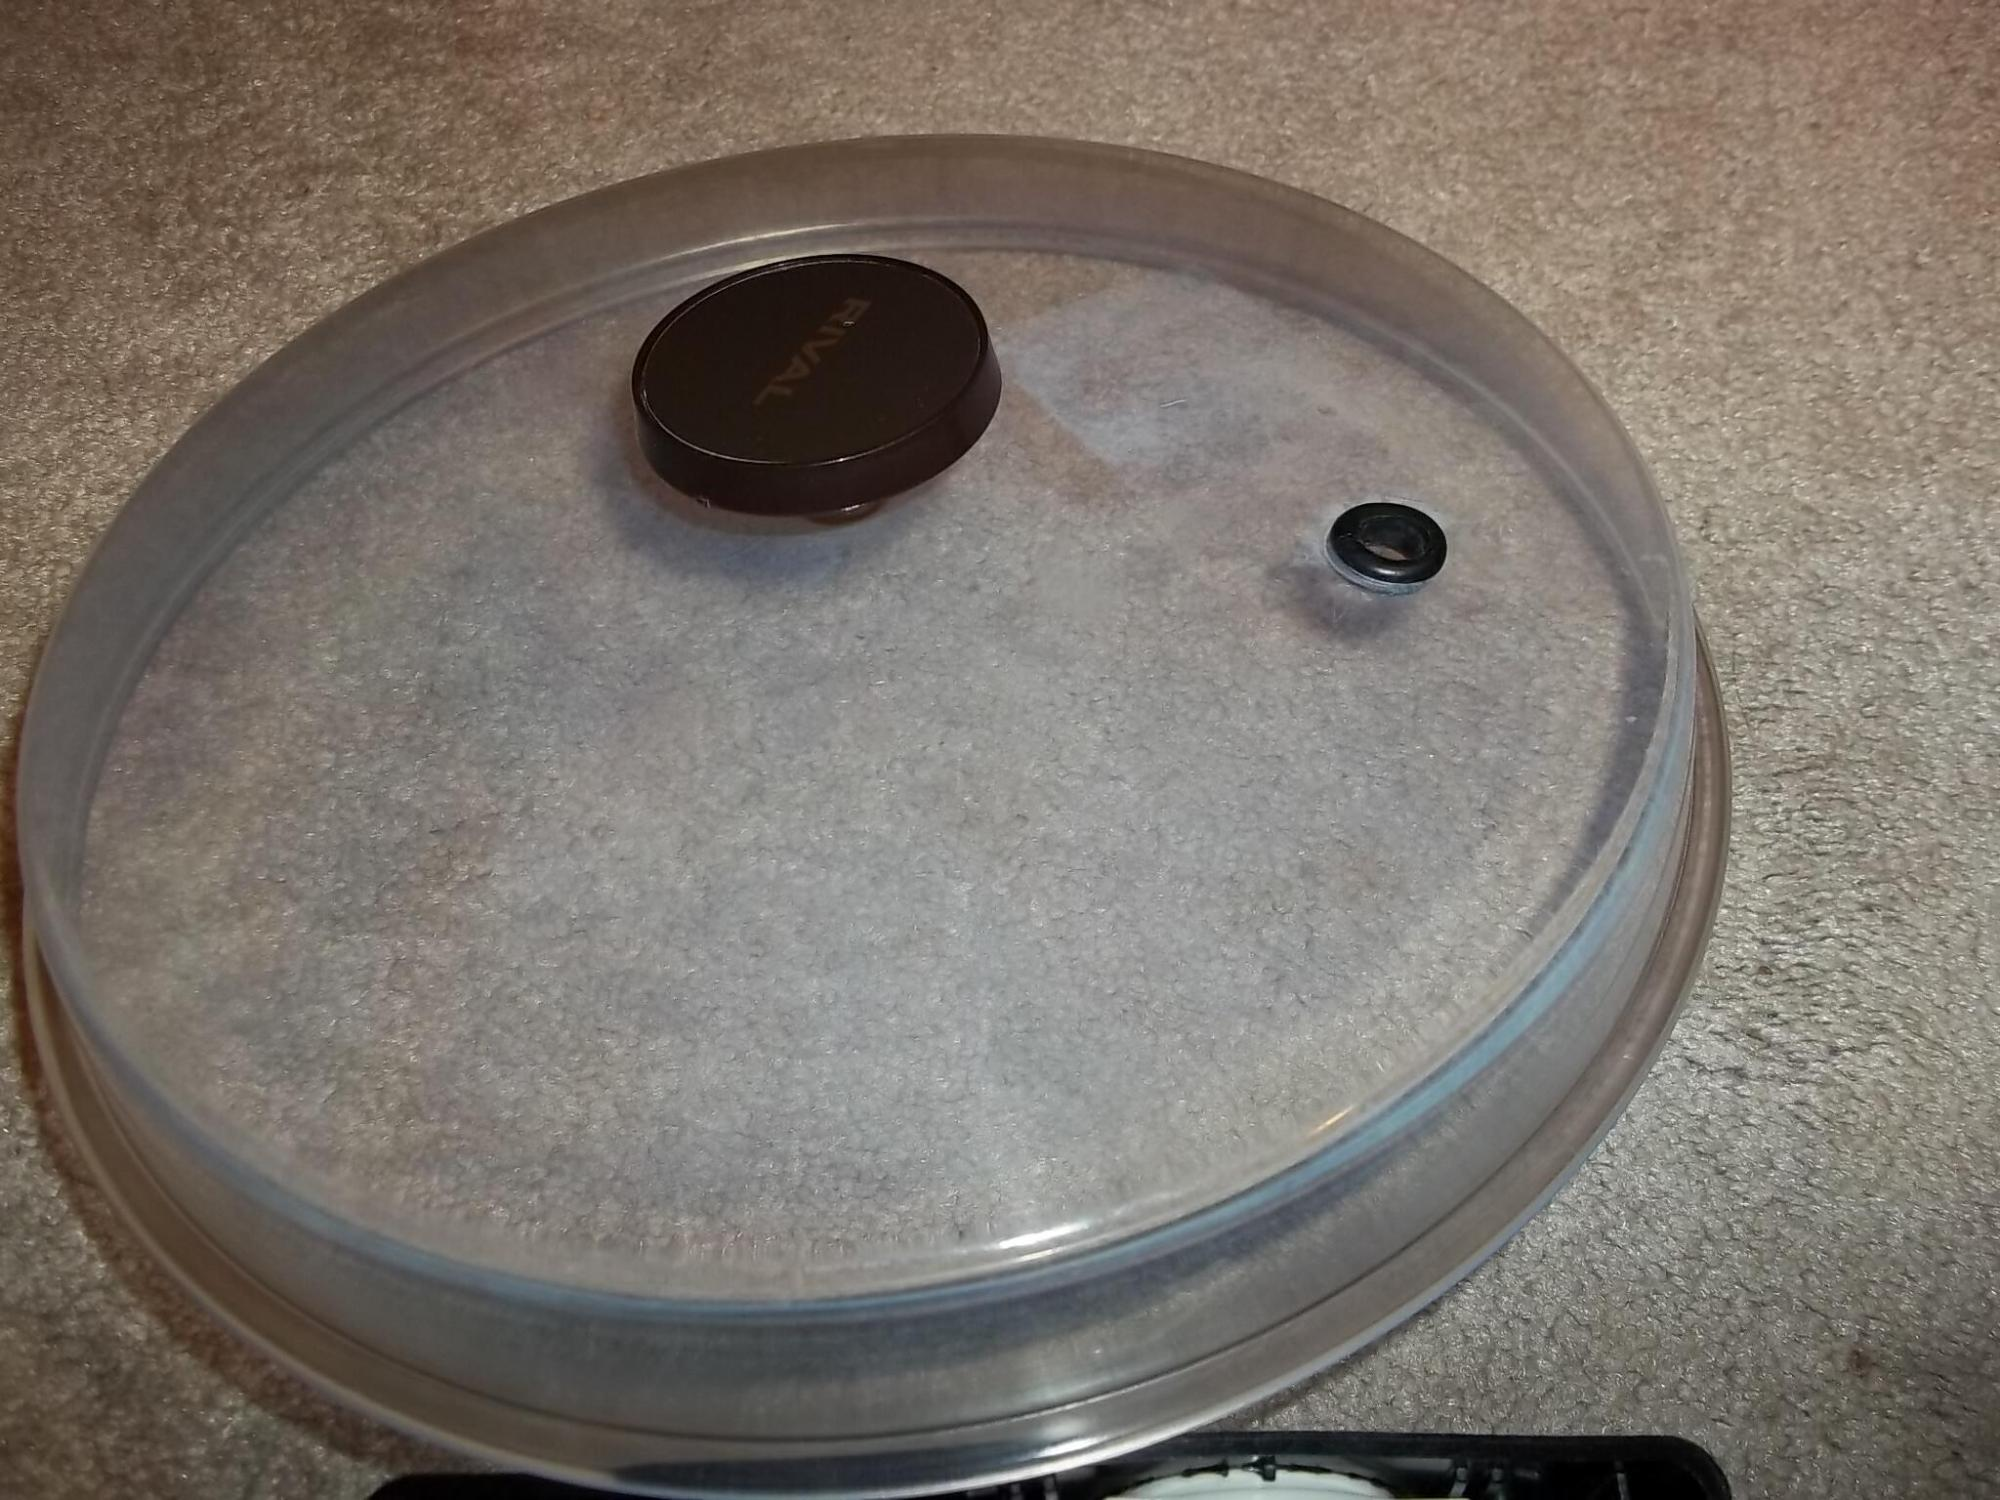 hight resolution of slow cooker lid